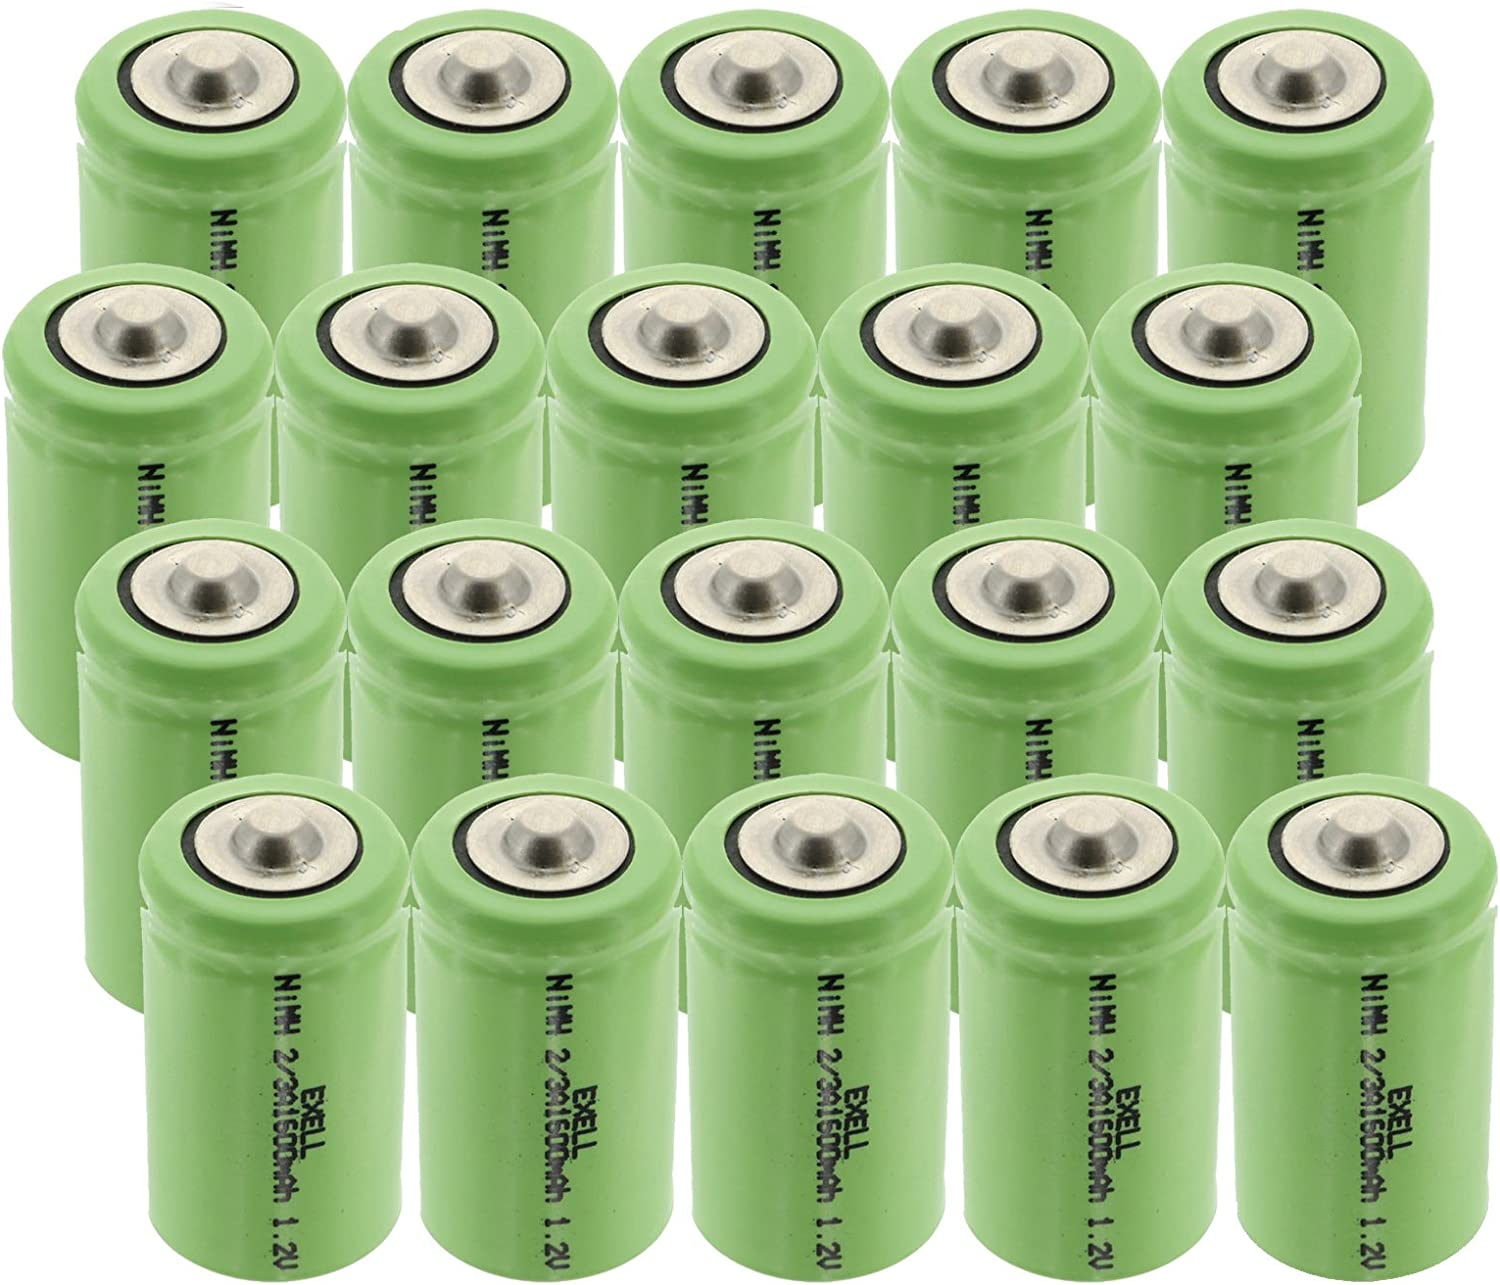 20x Exell 2 3A 1600mAh 新作通販 1.2V Button NIMH Batteri Rechargeable Top 特価キャンペーン